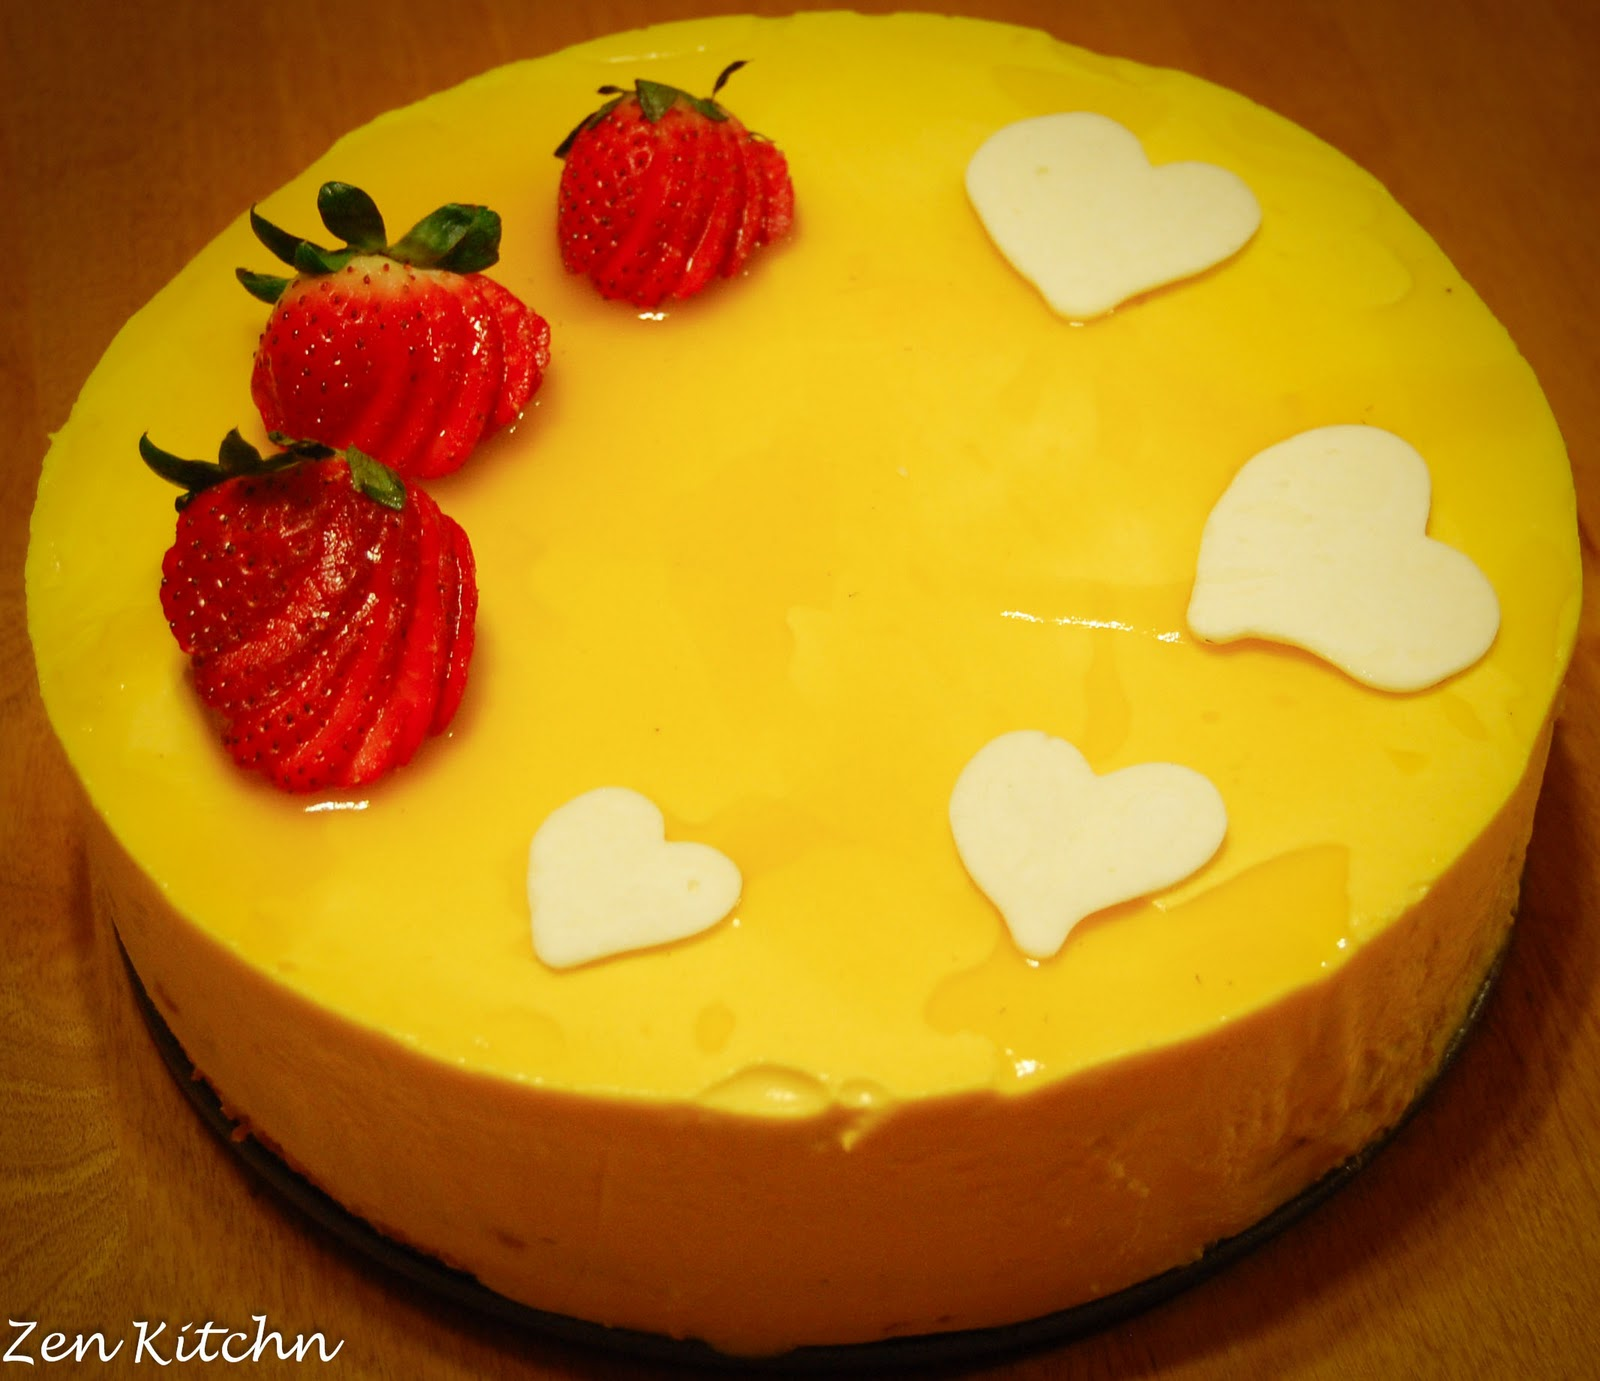 Images For Mango Cake : Zen Kitchn: Mango Mousse Cake